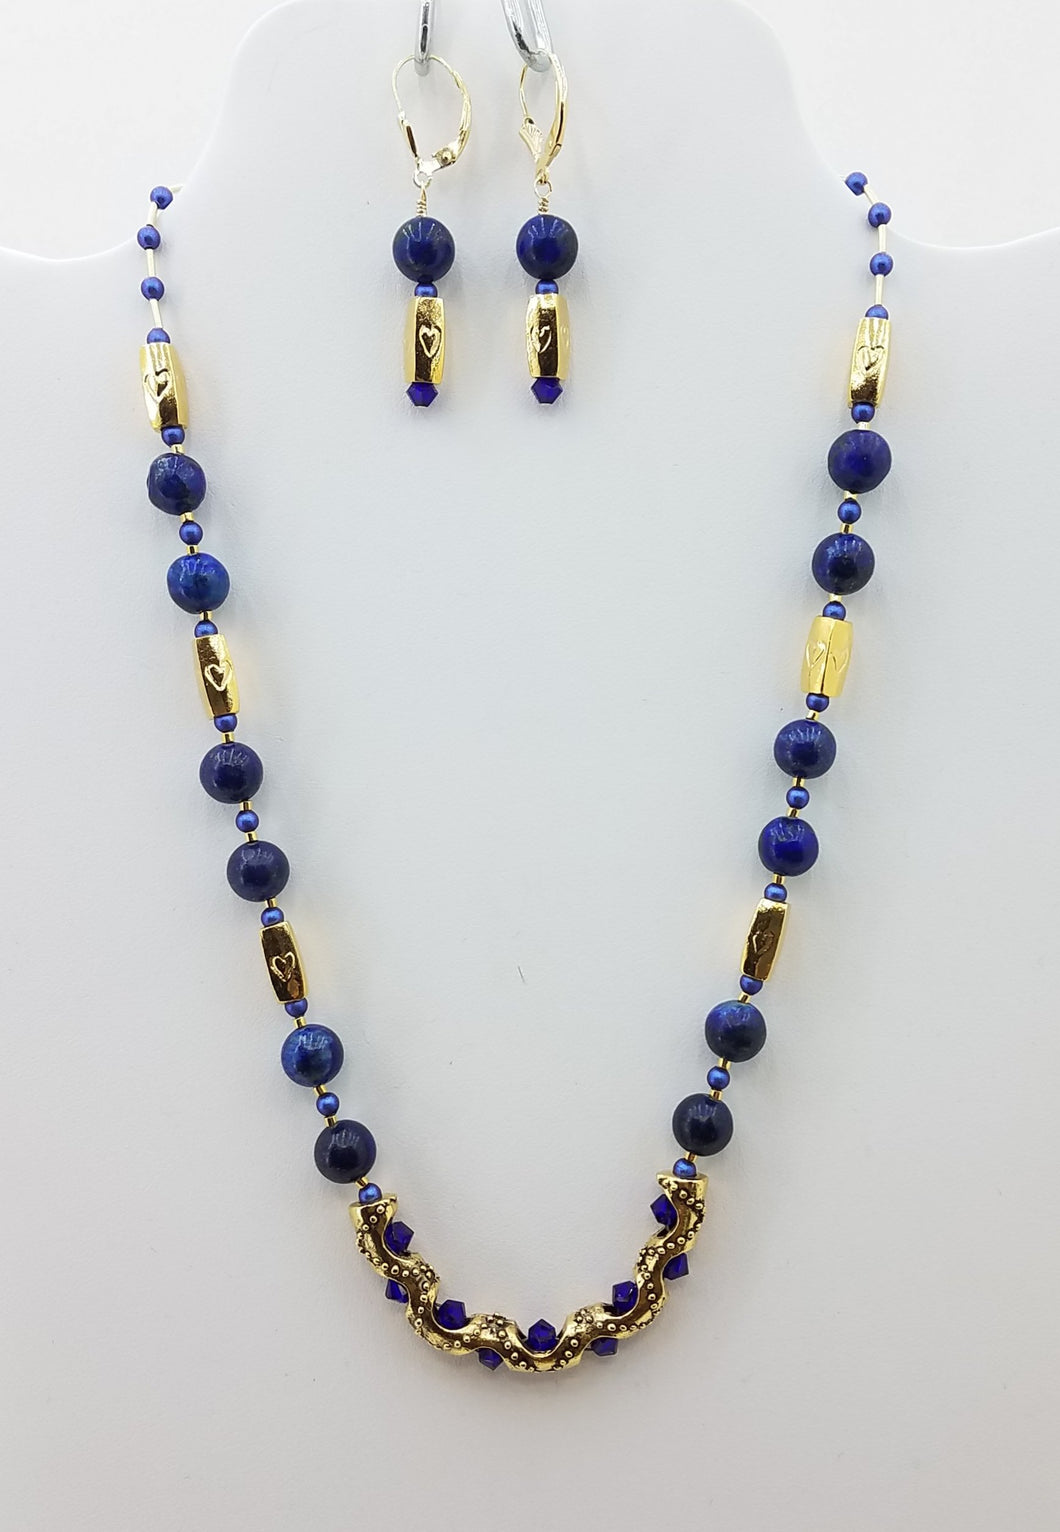 Necklace of Beautiful Lapis Lazuli Stones surround a Gold Plated Tube adorned with Swarovski Crystals. Also includes Swarovski Pearls, Miyuki Delica, Gold Fill, and Gold Plate.